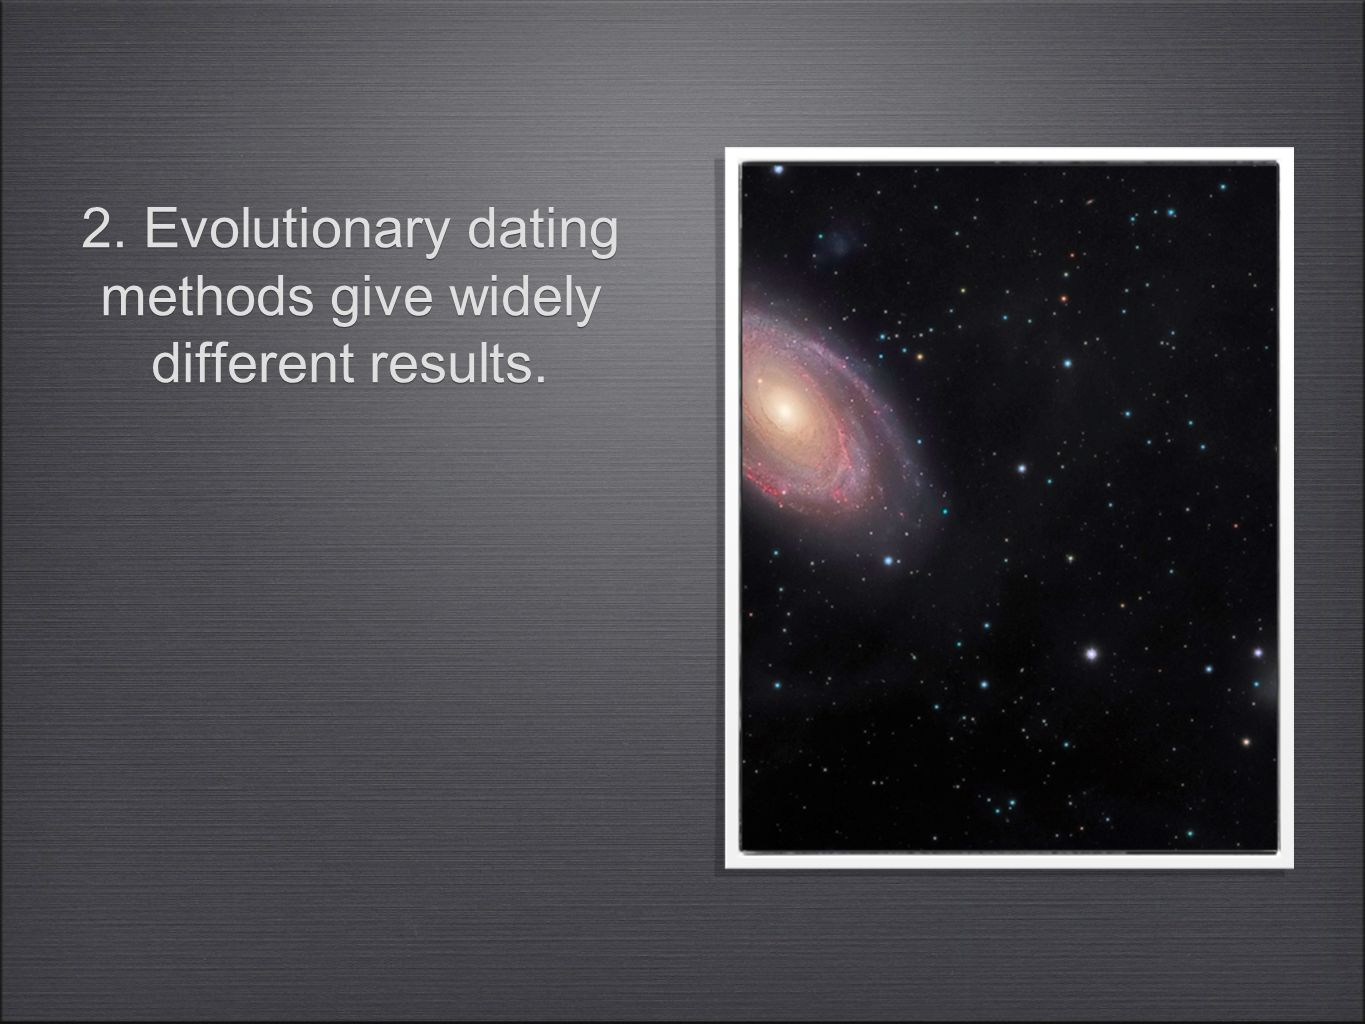 2. Evolutionary dating methods give widely different results.